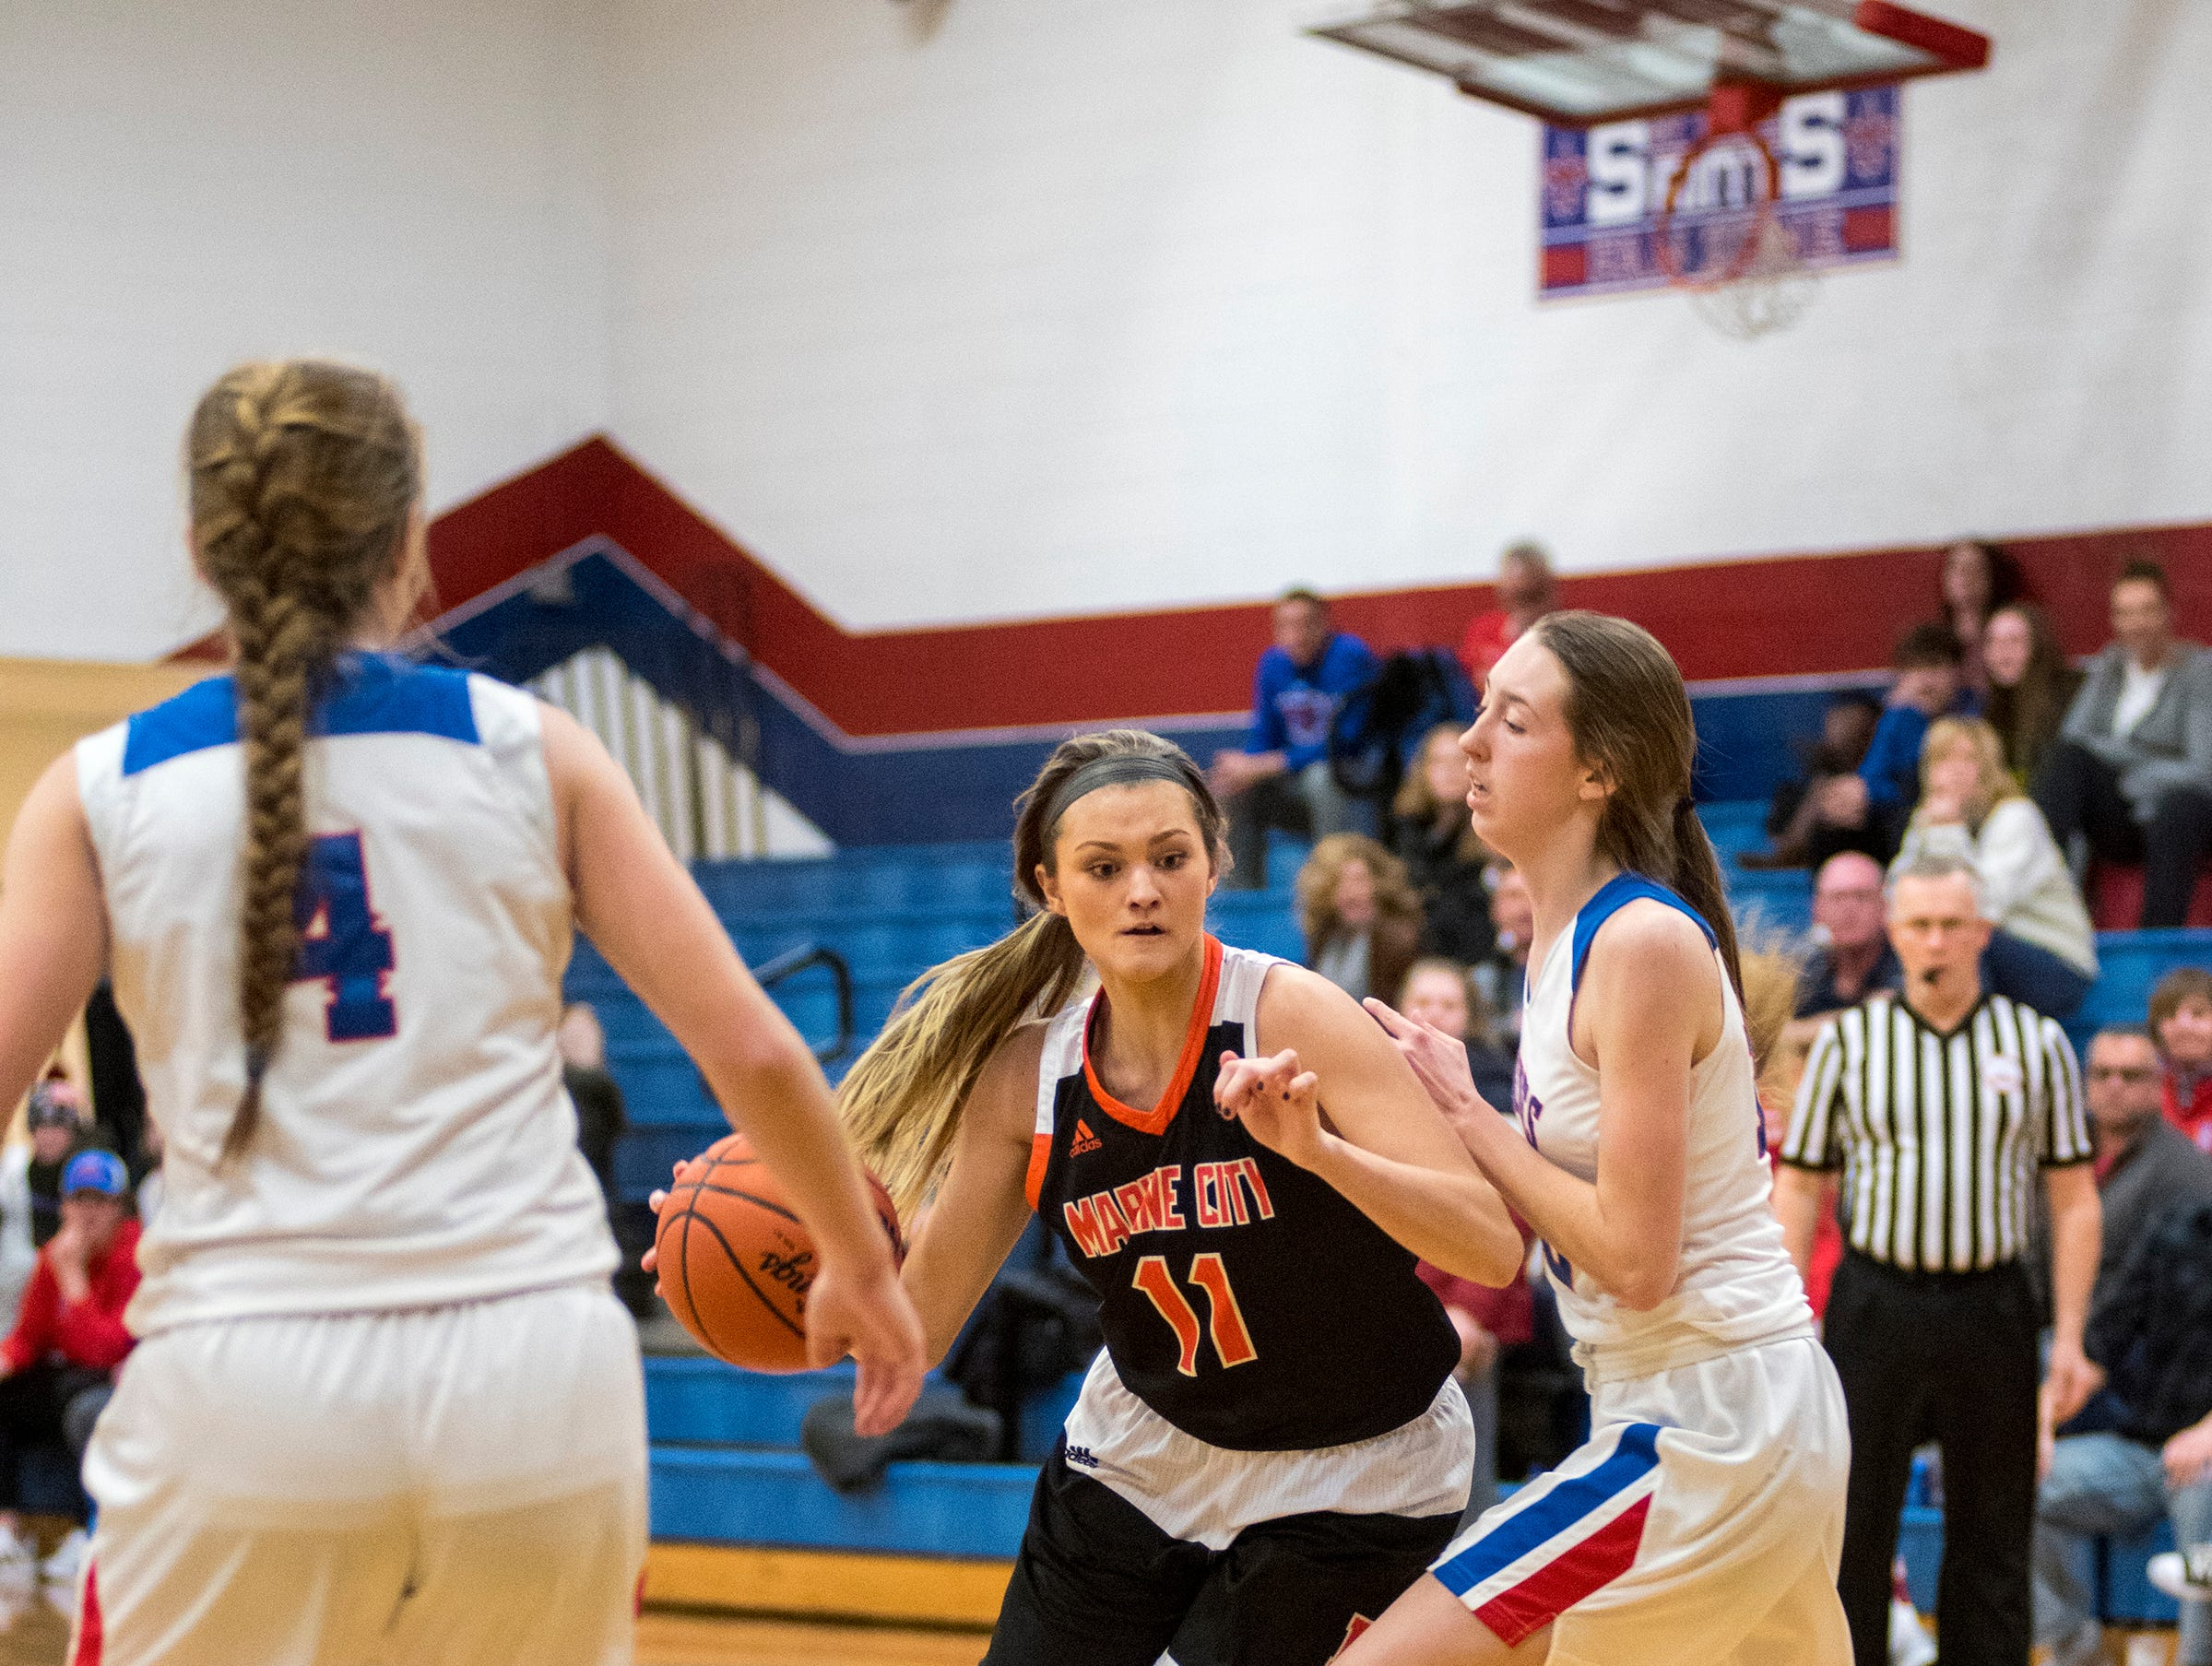 Marine City High School's Kennedy Osterland (11) dribbles the basketball around St. Clair's Christina Bohm during their game Friday, Feb. 8, 2019 at St. Clair High School.